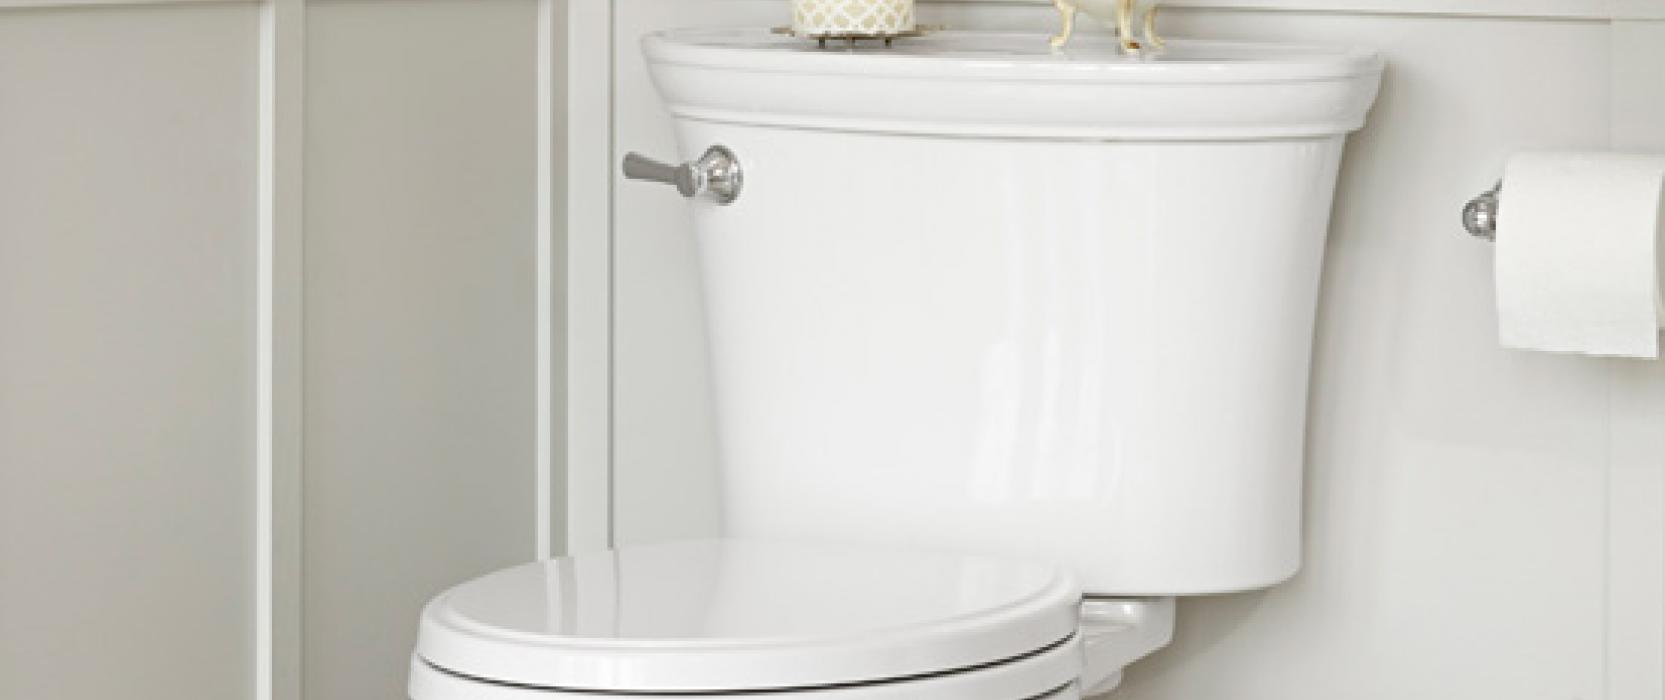 Frank Webb's Bath Centers – Your F.W. Webb Showrooms